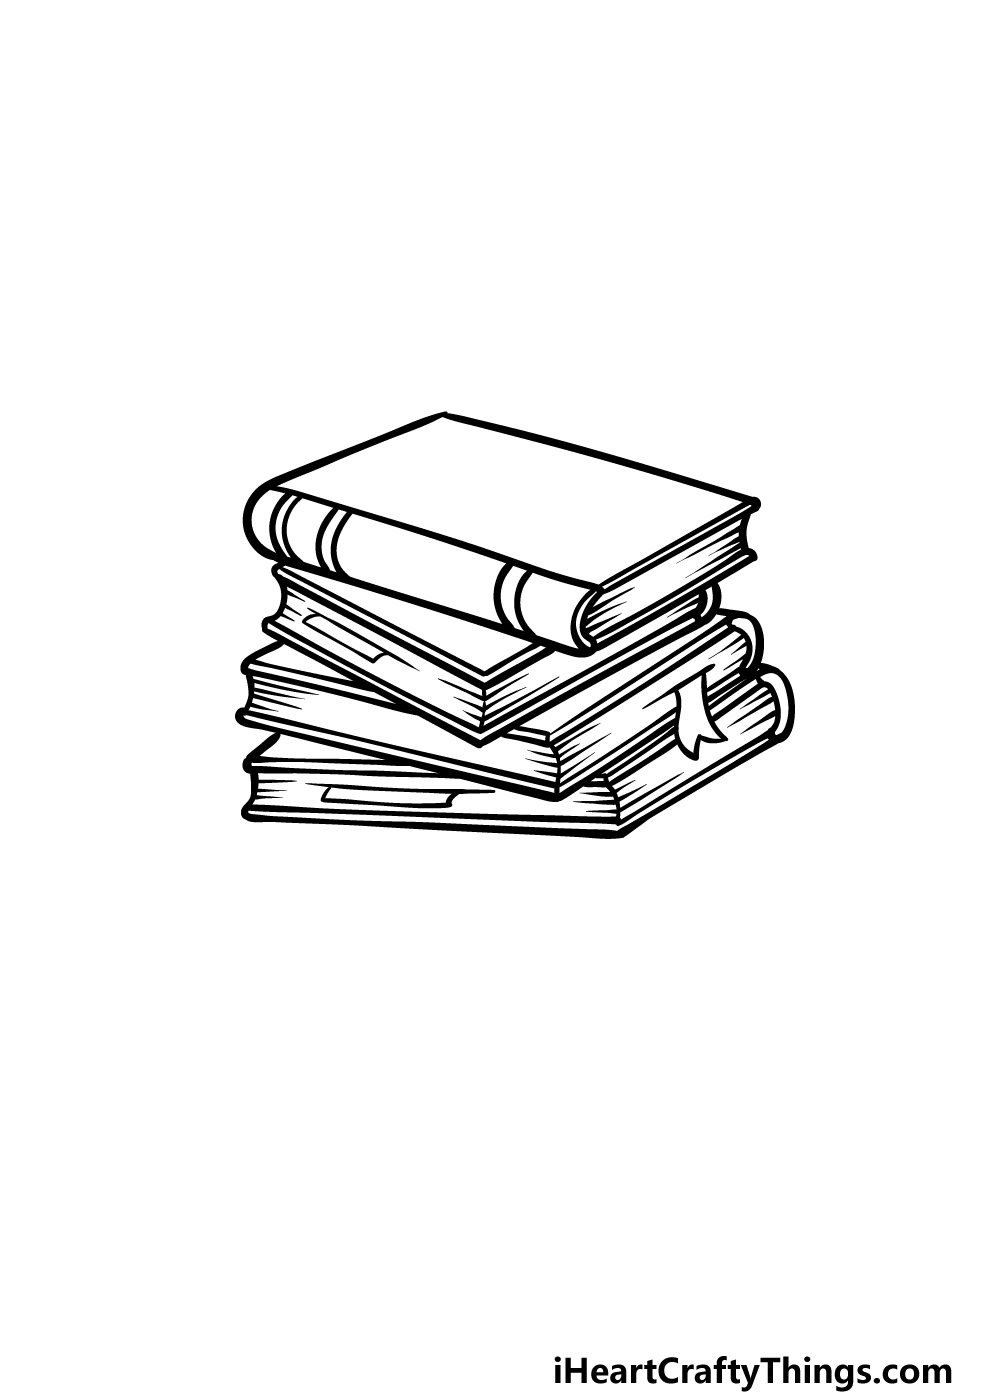 drawing a stack of books step 3